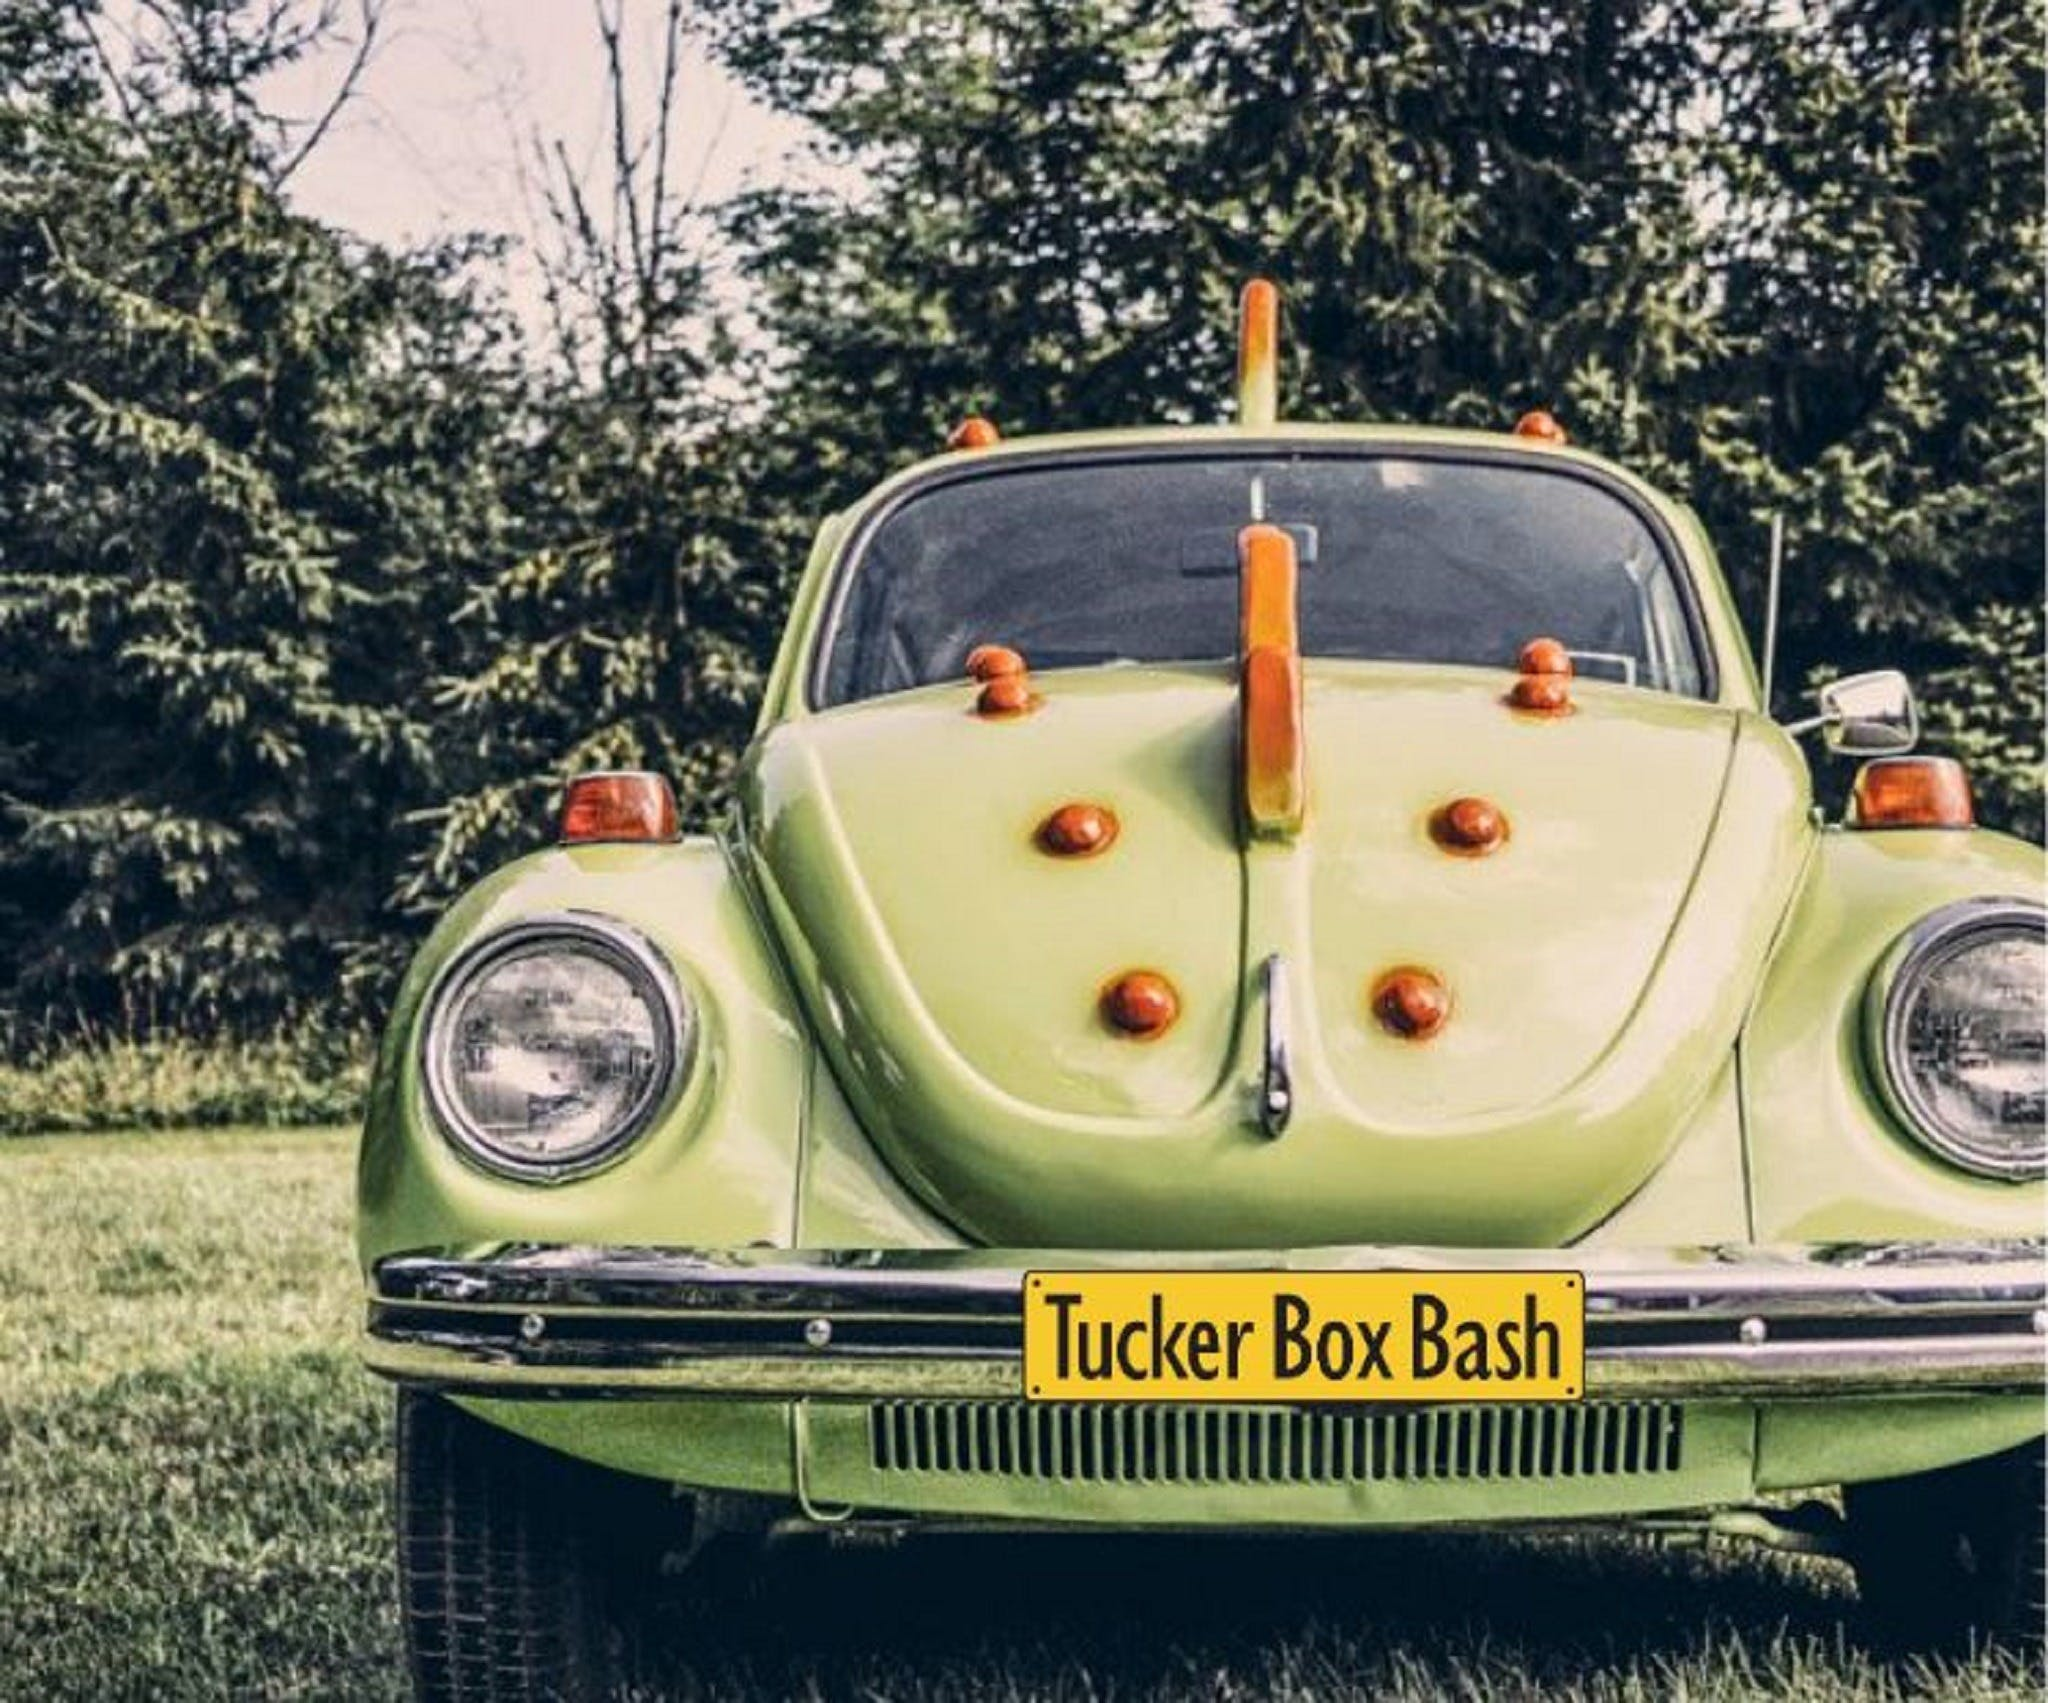 Tucker Box Bash - New South Wales Tourism